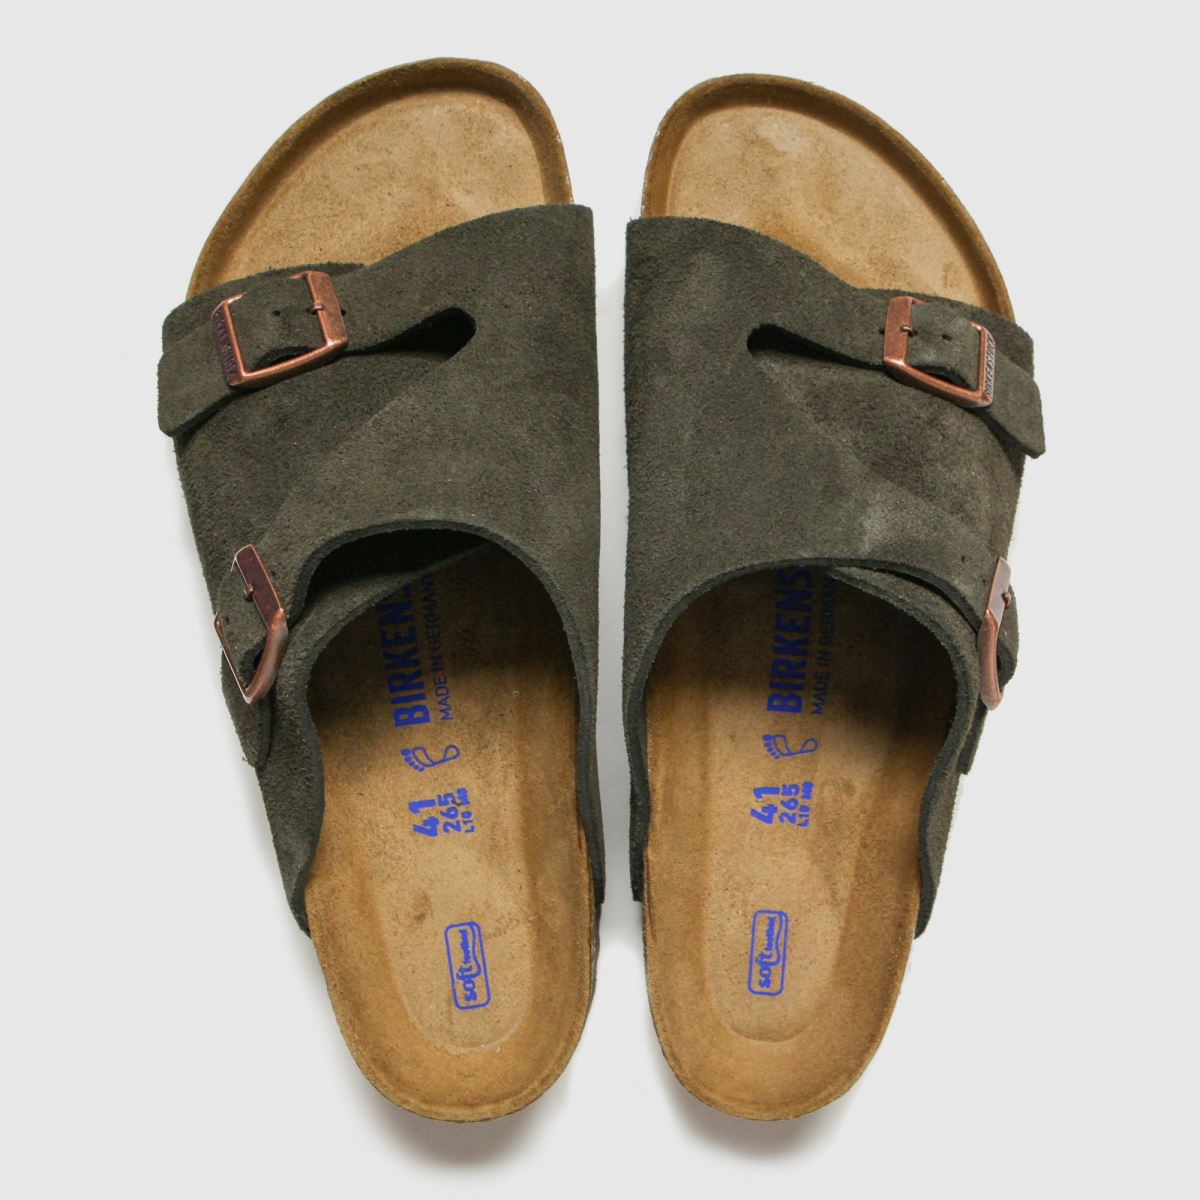 Birkenstock Brown Zurich Sandals